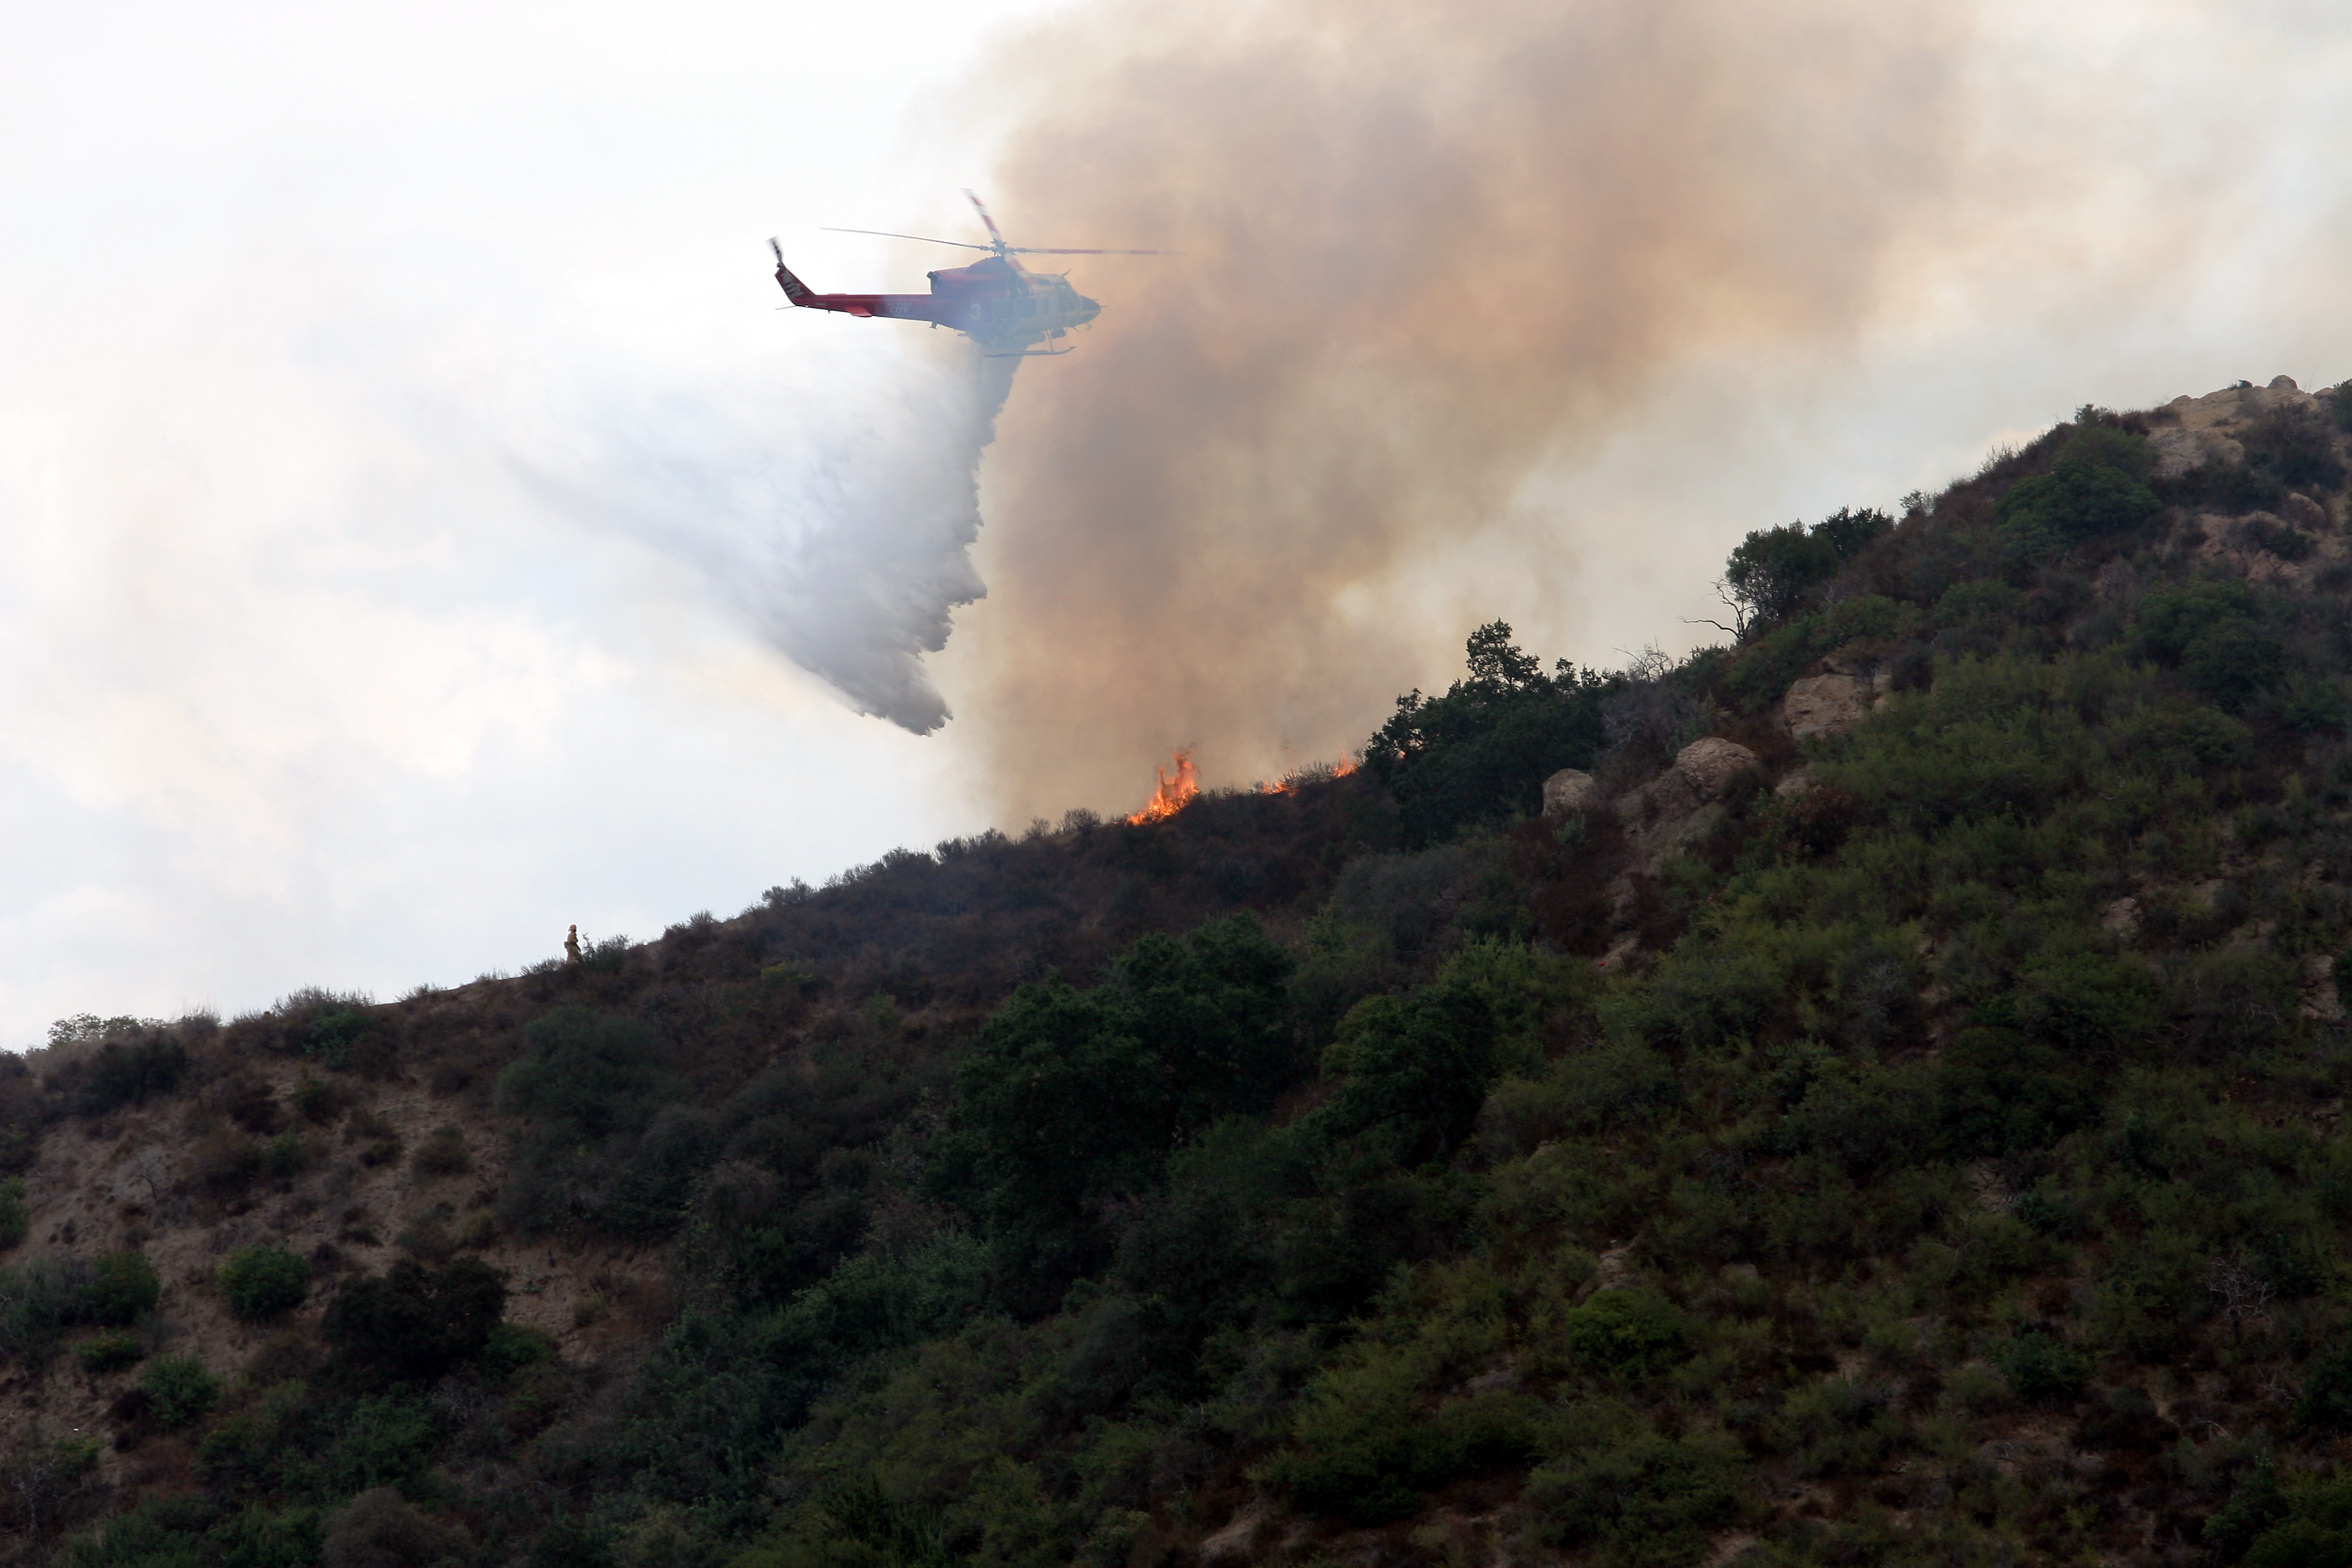 LA City Fire Department Helicopter droping water on a fire in the Hollywood Hills.